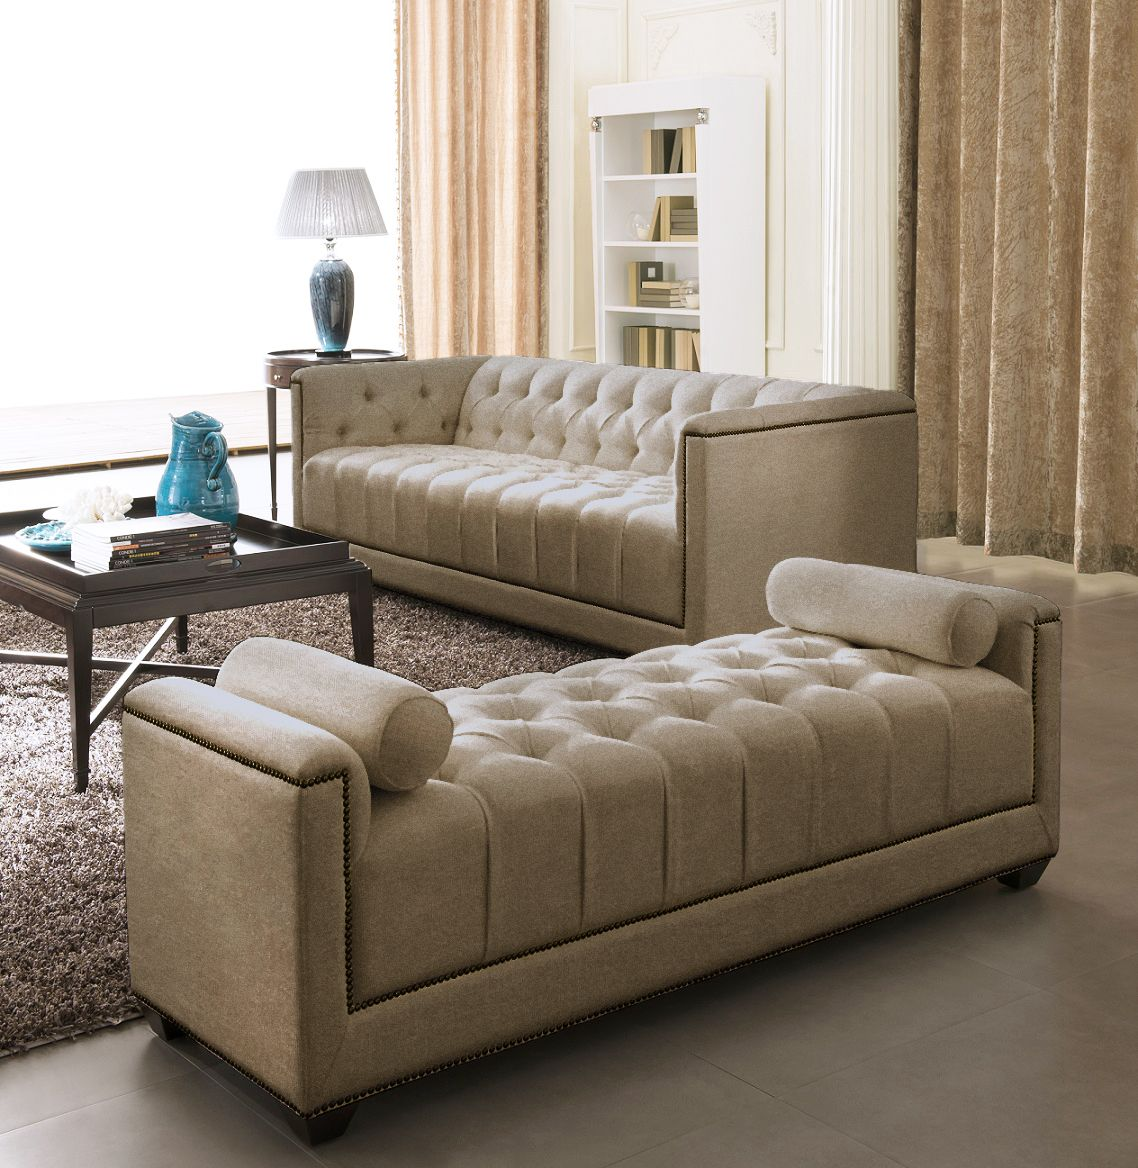 Fabric Sofa Set - Eden - Gold in 2019 | Sofa furniture | Living room ...